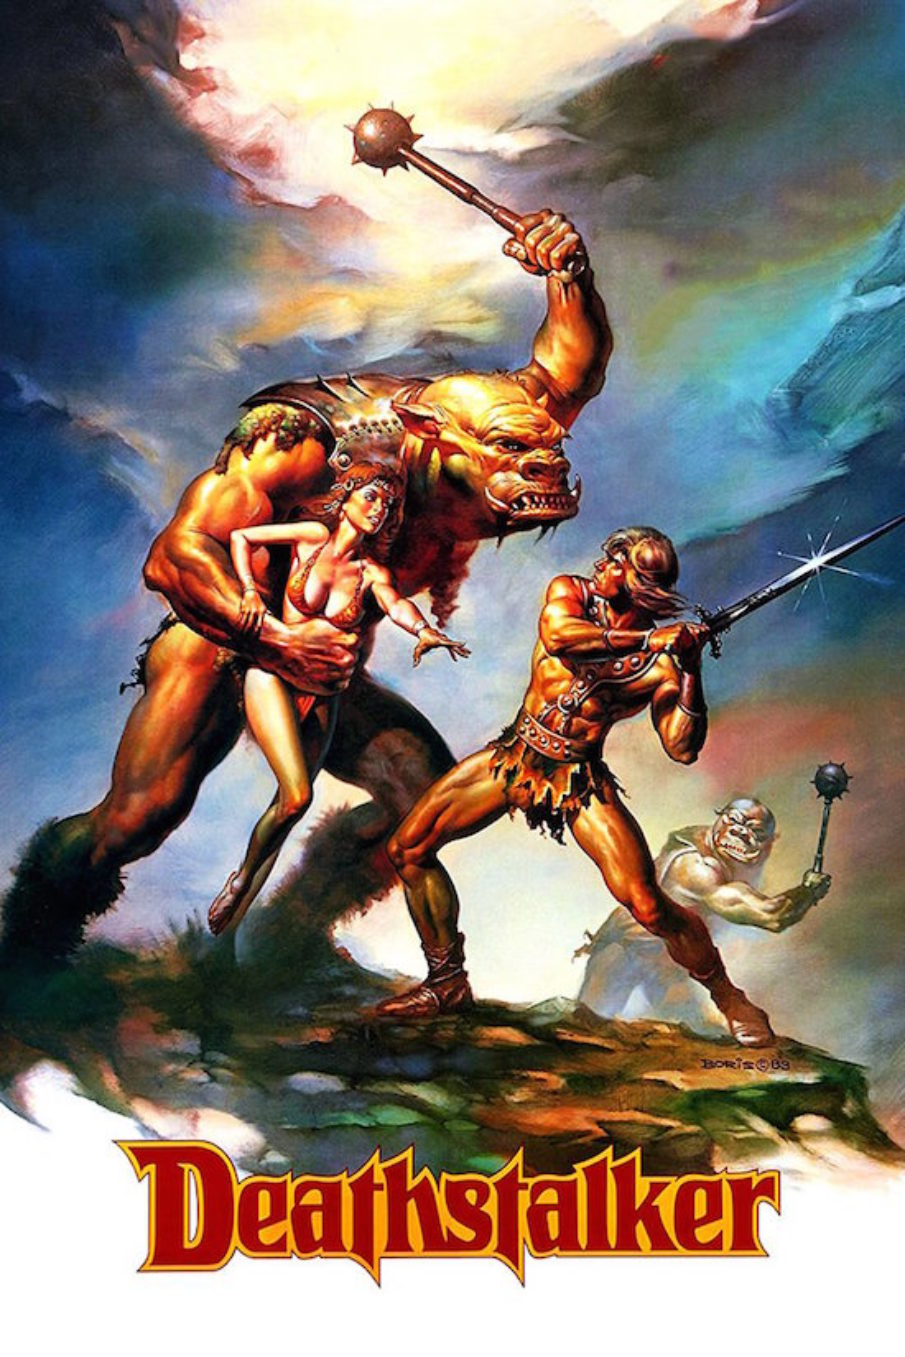 Movie Diary: Deathstalker (1983)